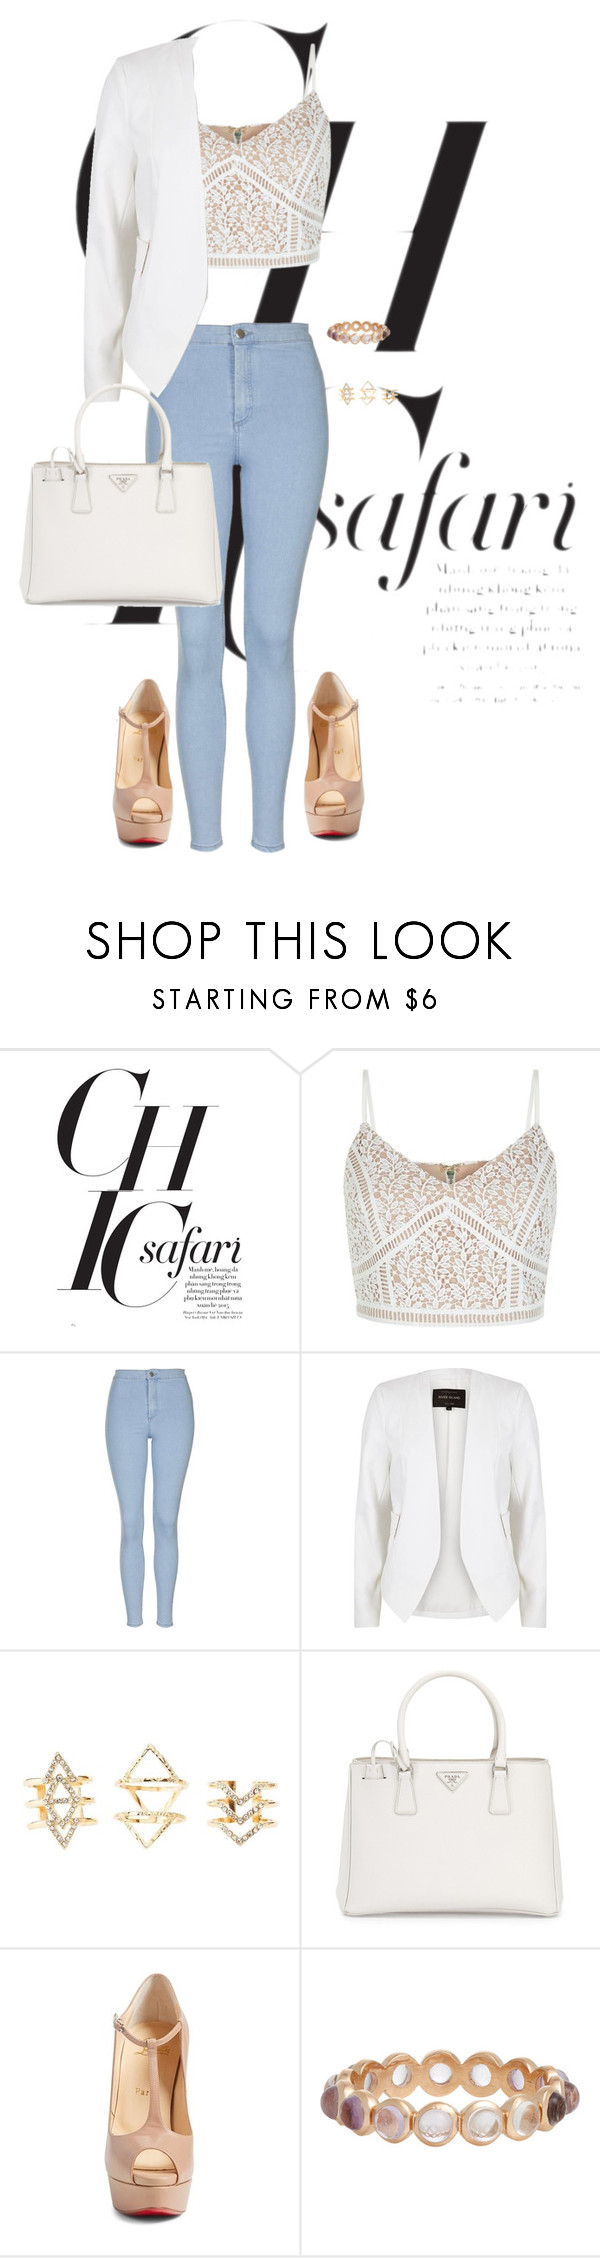 """Untitled #215"" by jmatz on Polyvore featuring Topshop, River Island, Charlotte Russe, Prada, Christian Louboutin and Irene Neuwirth"